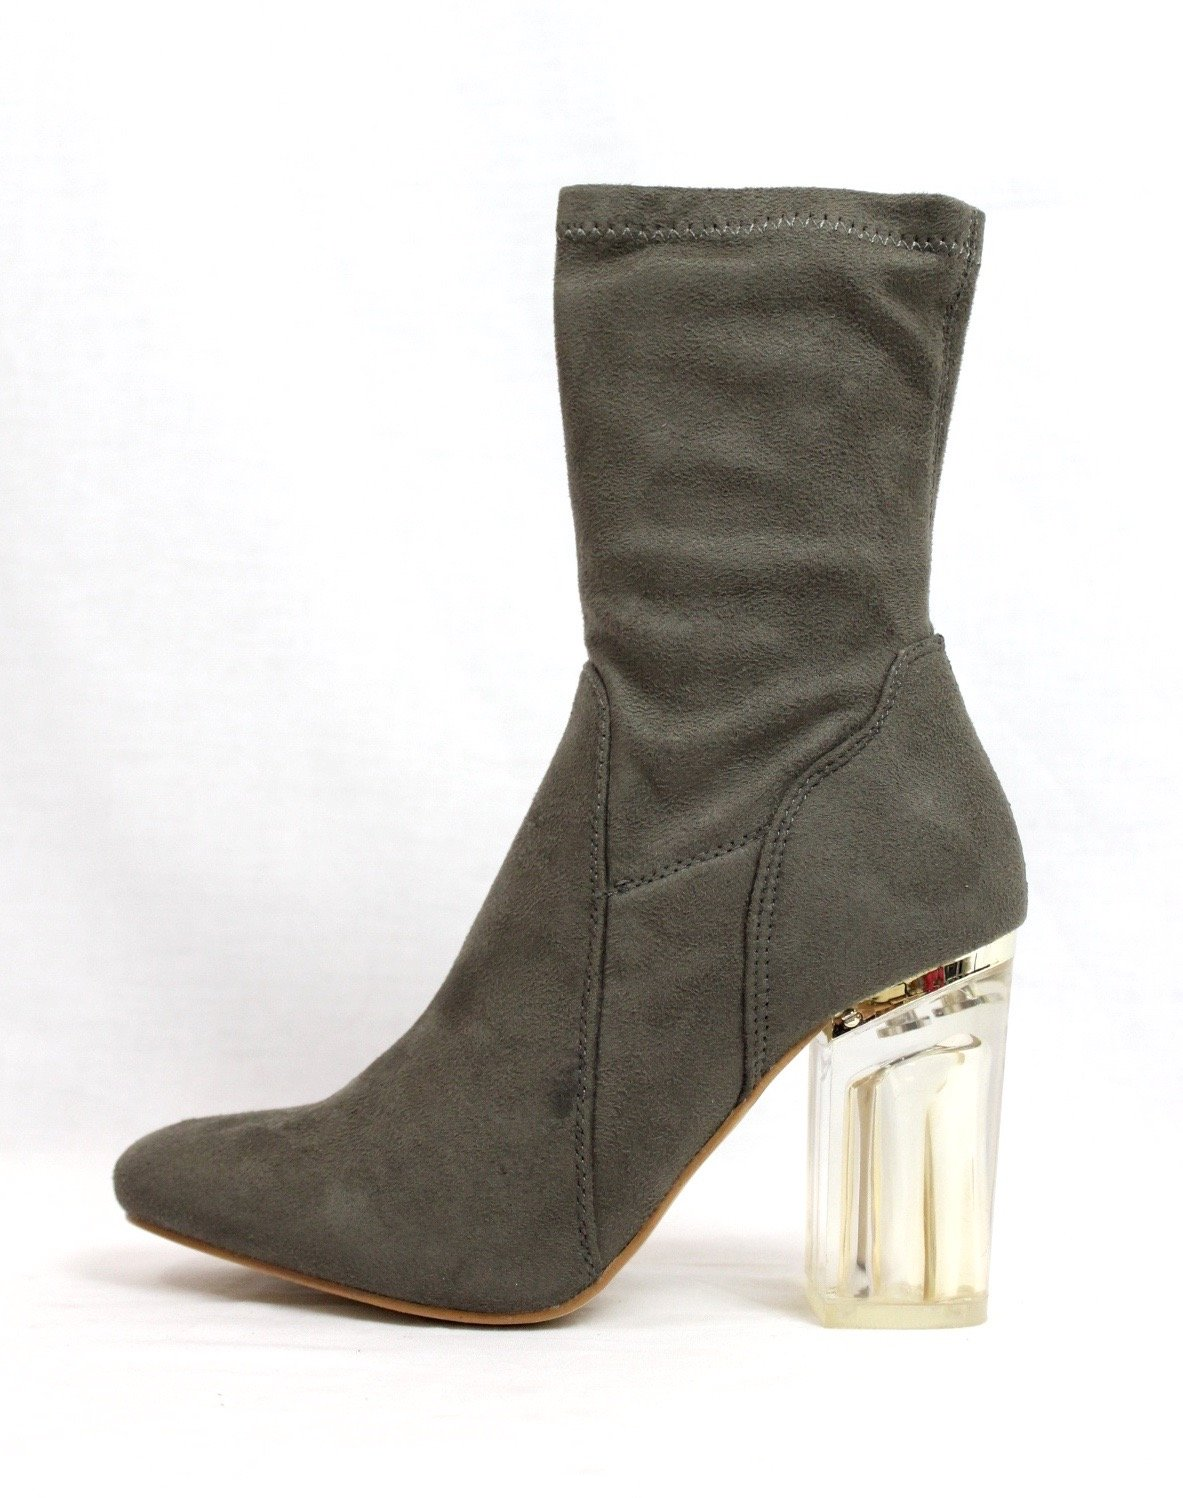 Cape Robbin Fay-1 No Frontin Glass Heel Stretch Patent Ankle Boot (8.5, Olive)